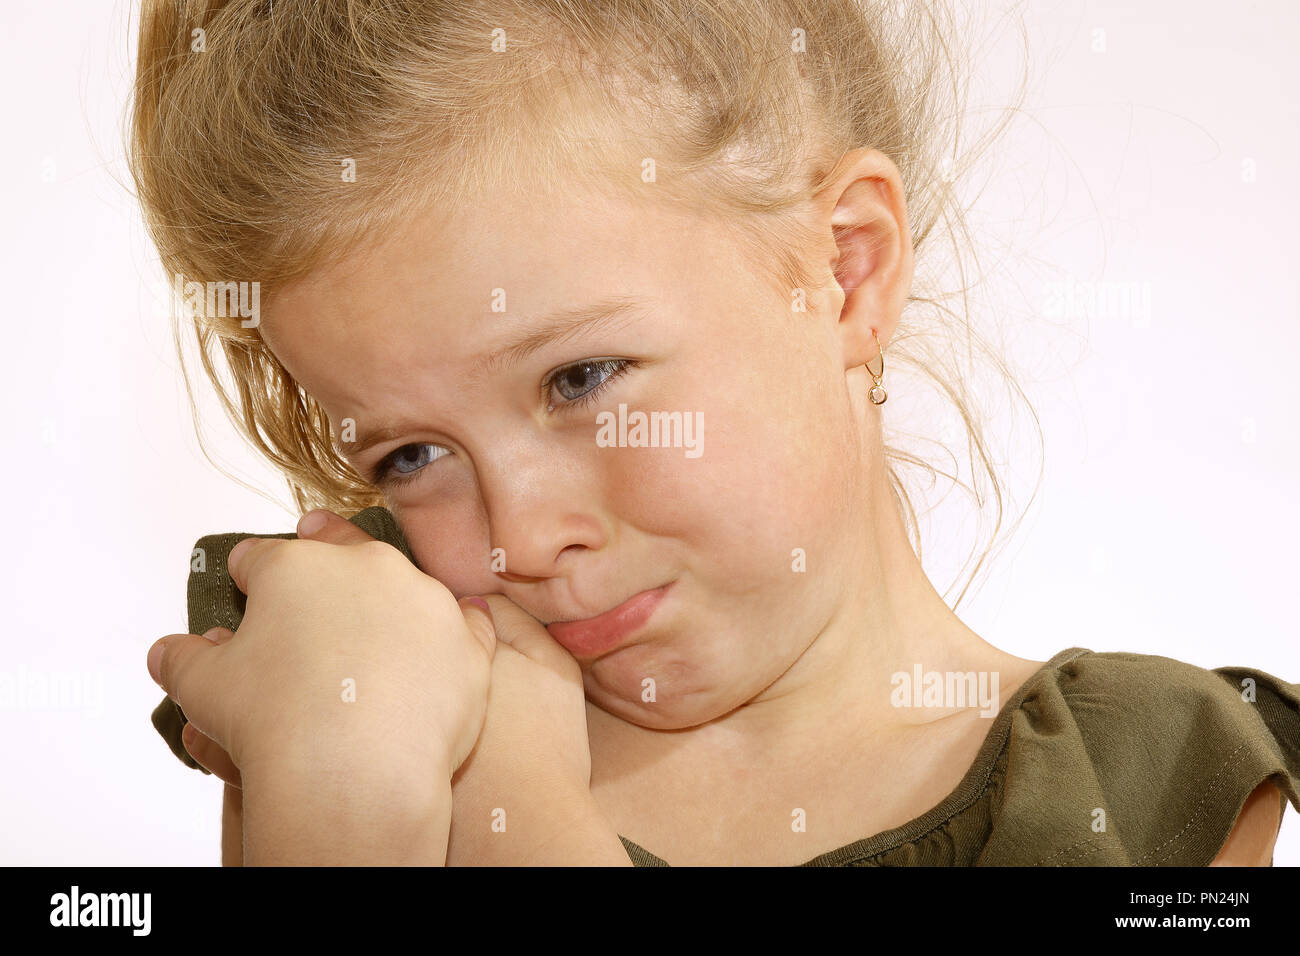 Six year old girl,crying - Stock Image